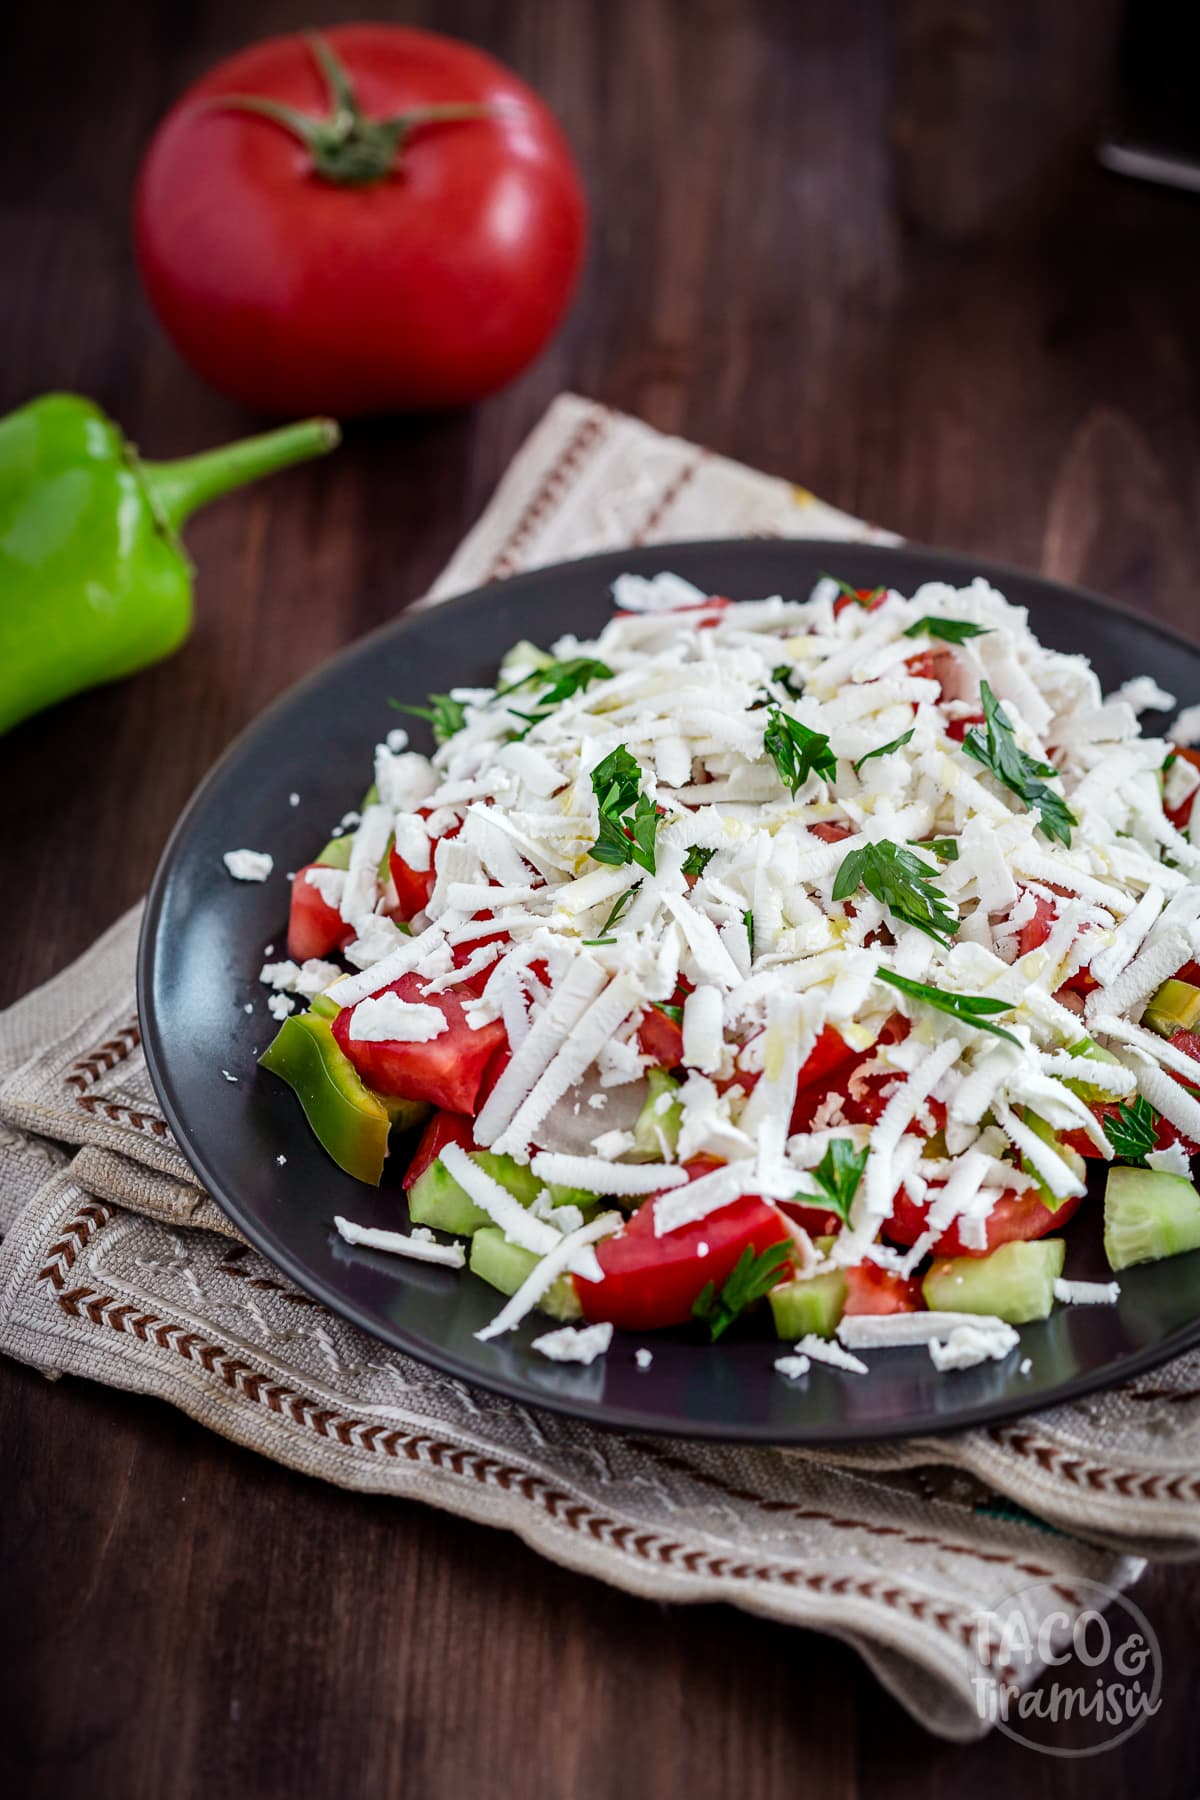 shopska salad with a tomato and pepper aside